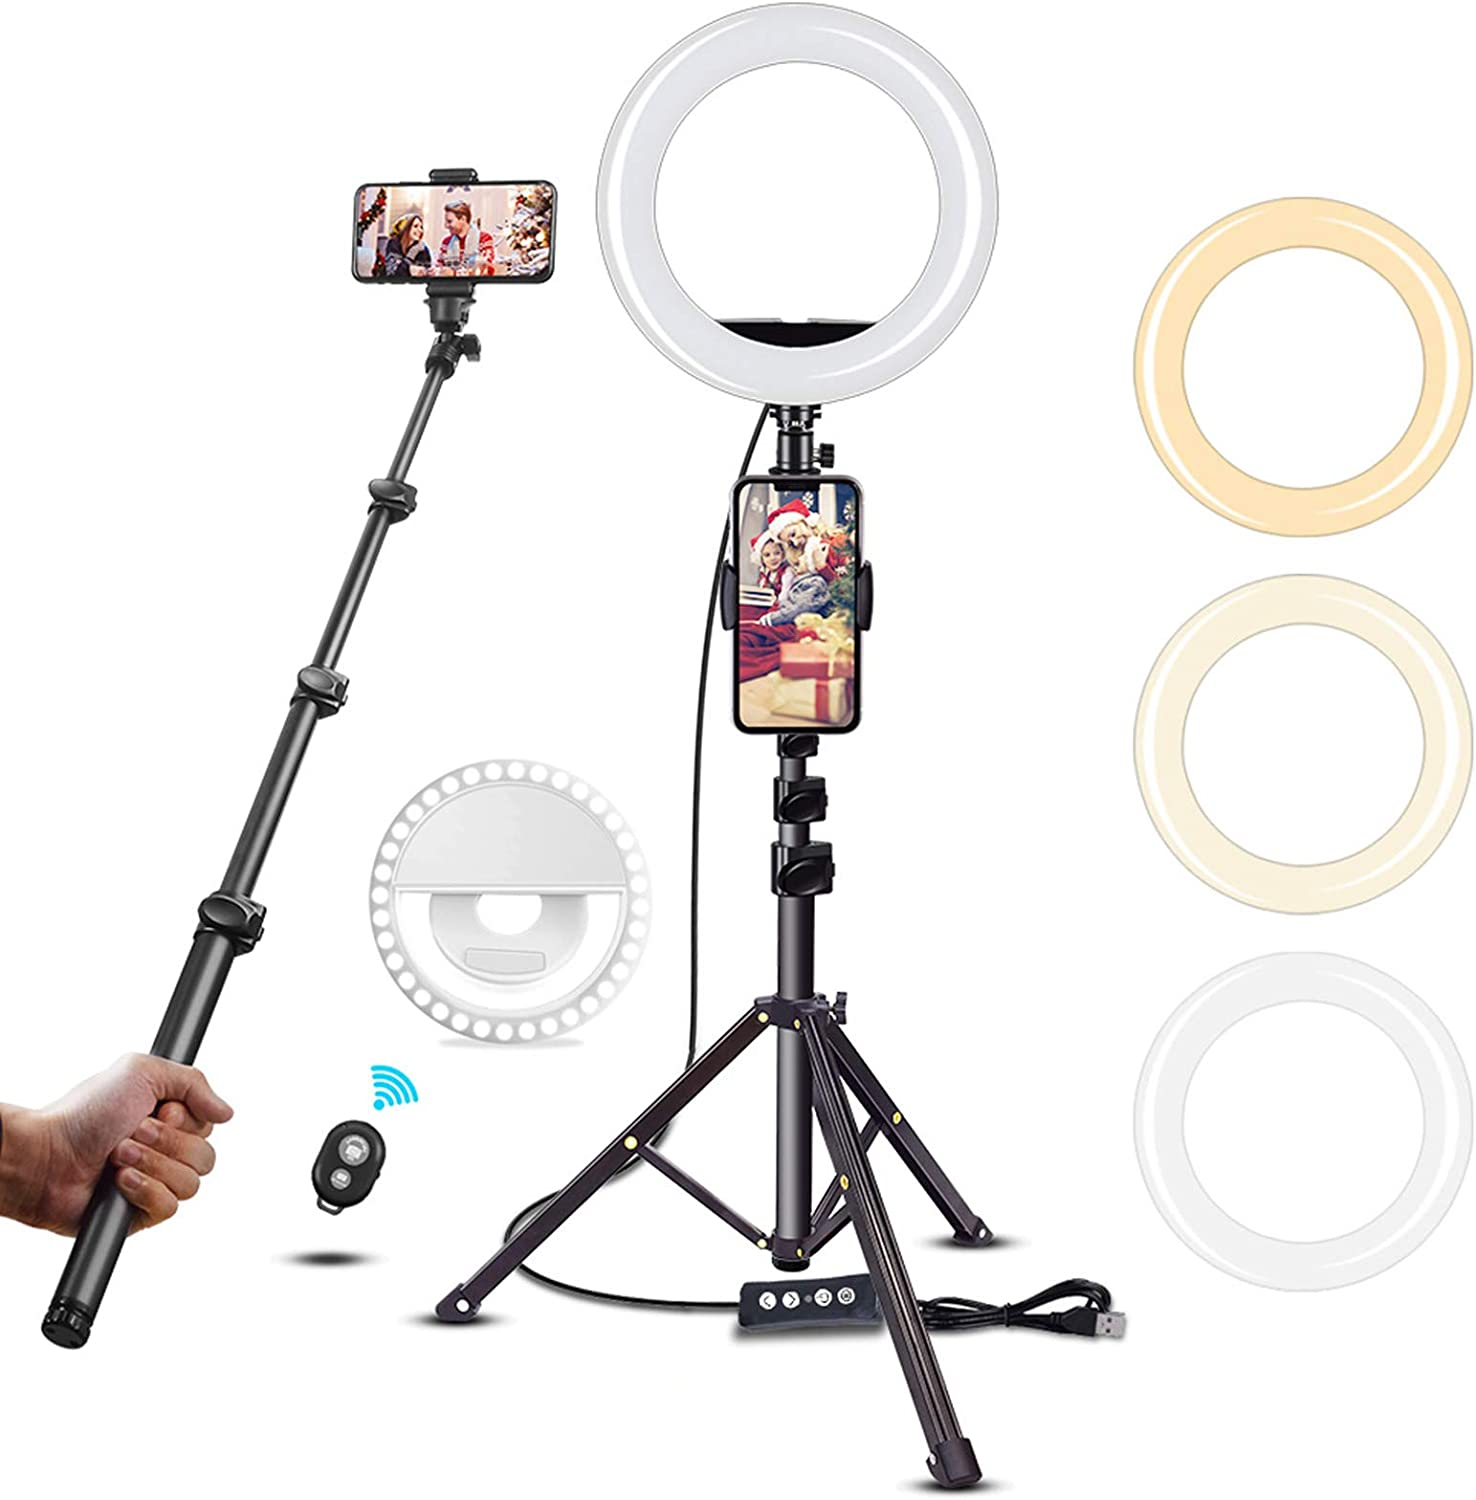 50% Off Deal – 40% Coupon Code + 10% Clipping Selfie LED Ring Light with Tripod & Cell Phone Holder